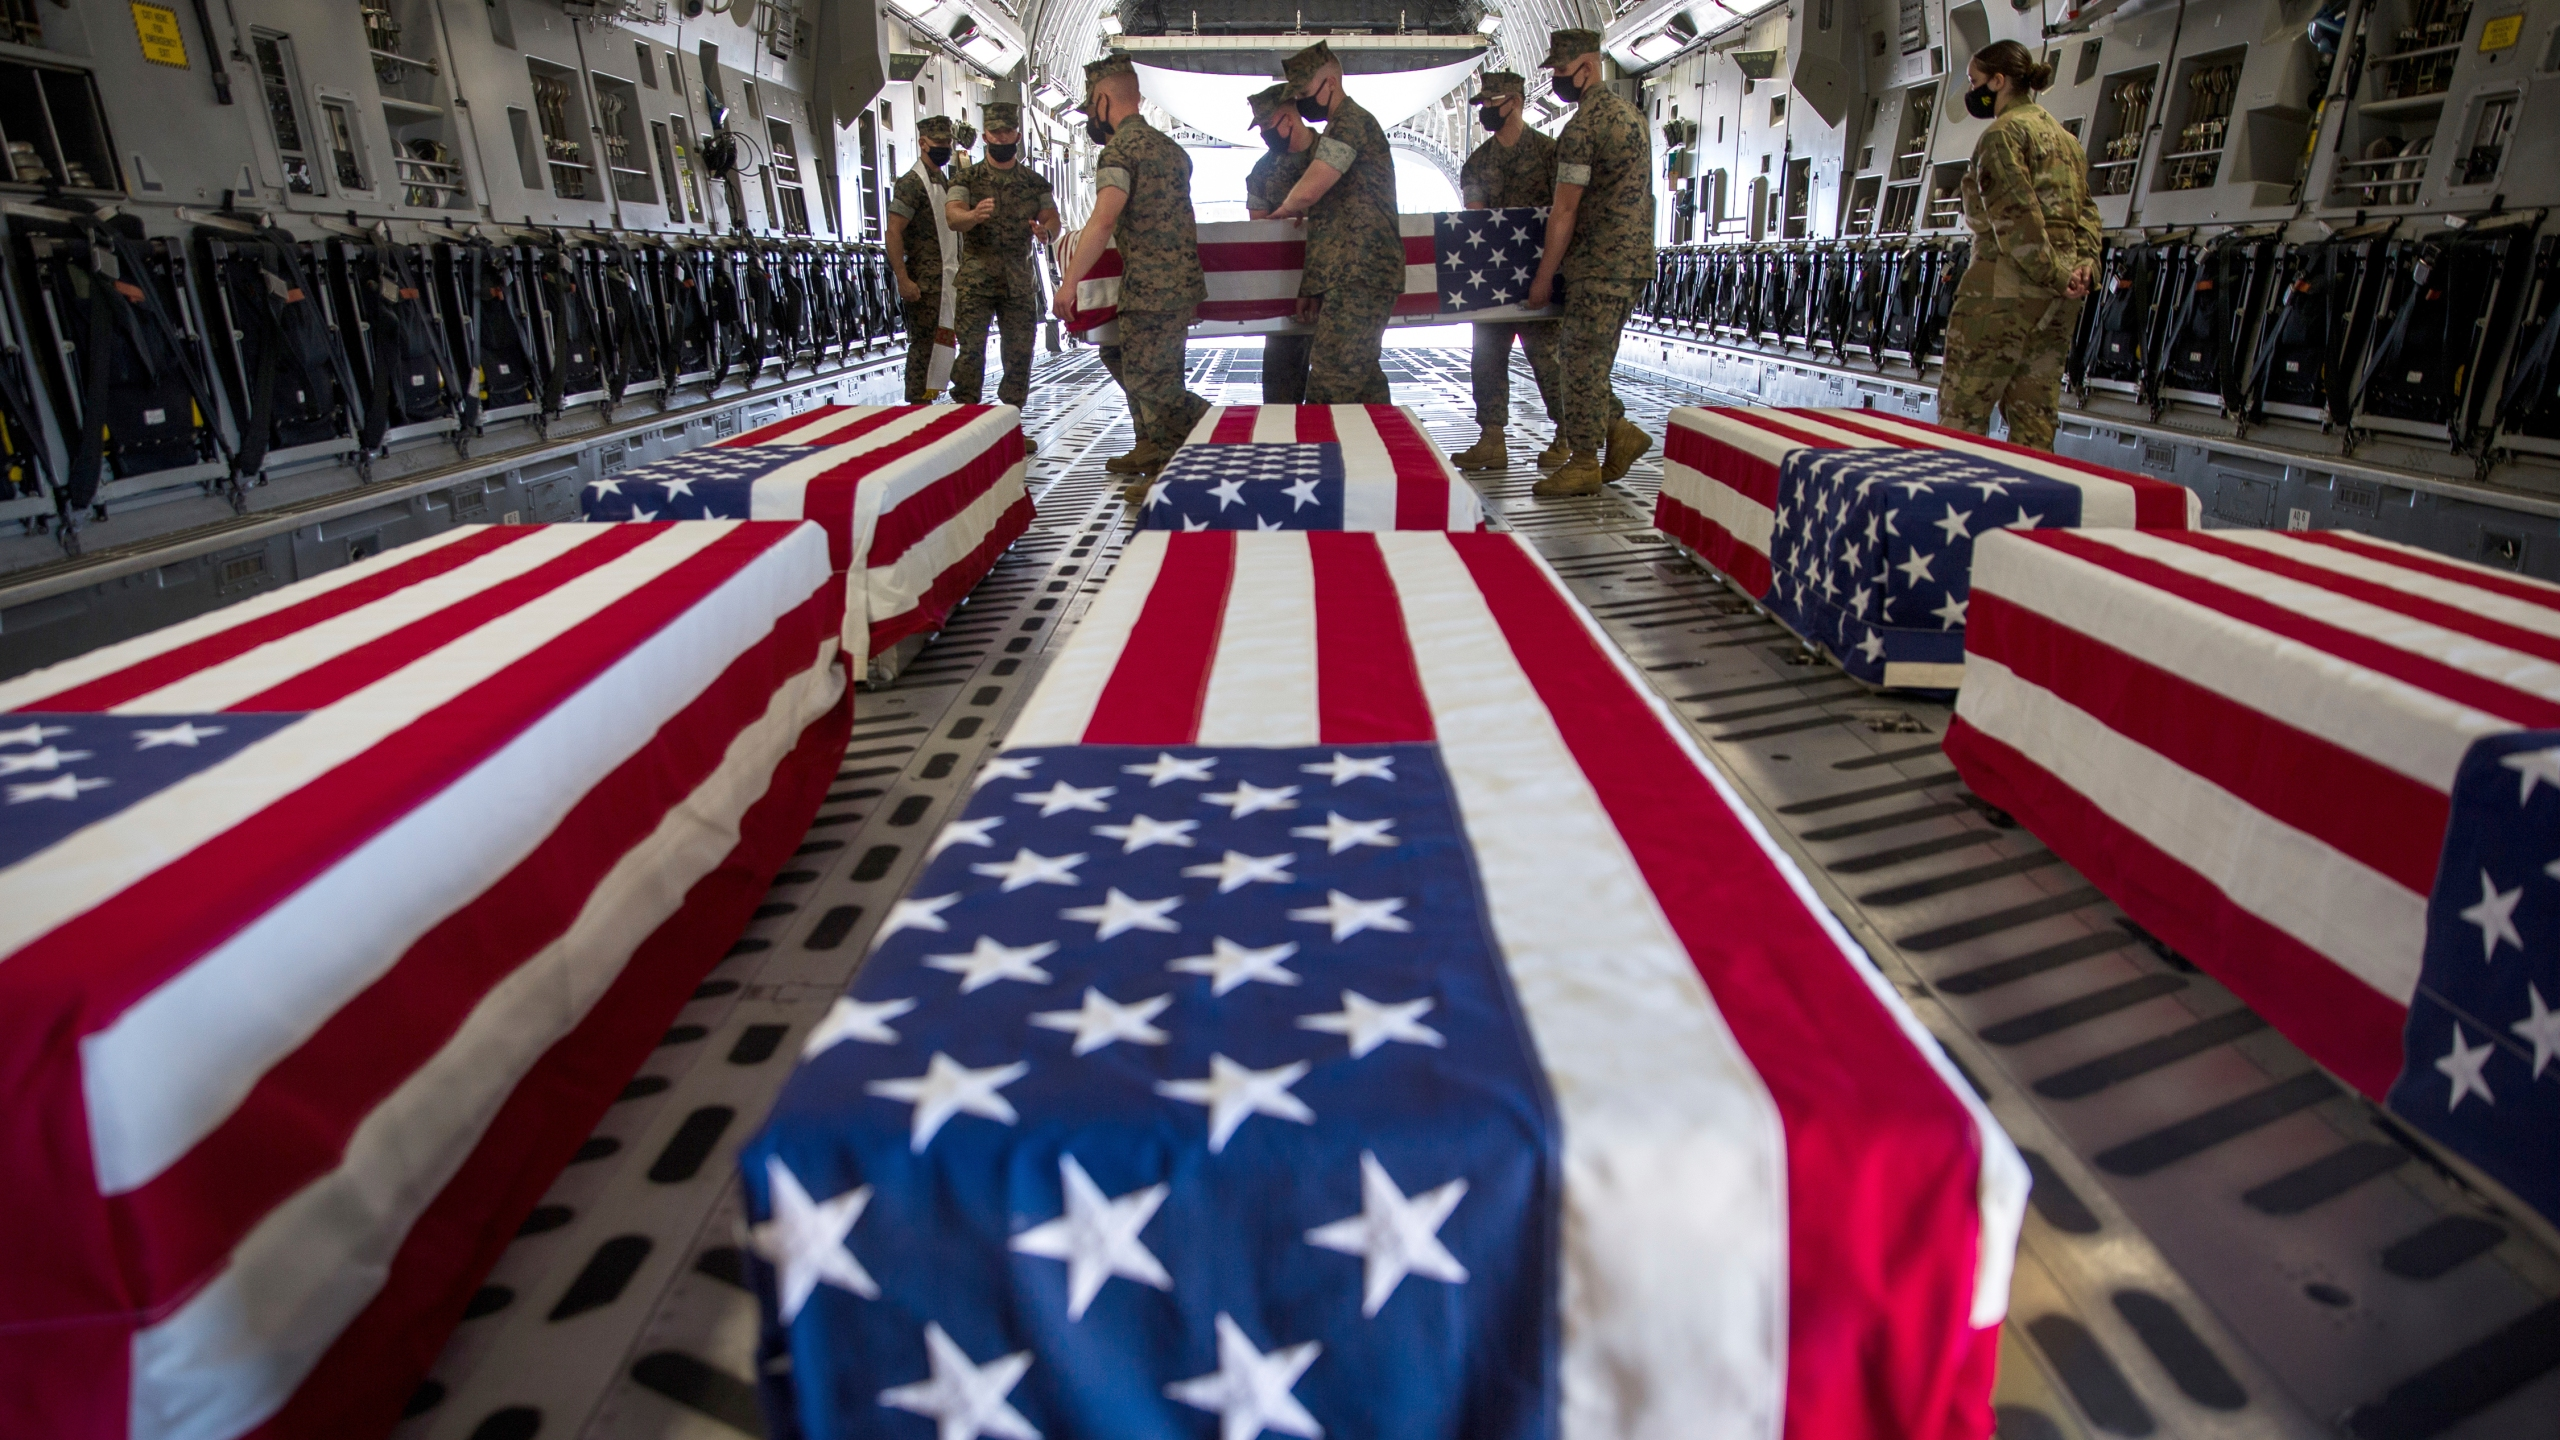 In this Aug. 12, 2020, file photo provided, by the U.S. Marine Corps, U.S. Marines and sailors carry a casket of the remains of one service personnel who died when their amphibious vehicle sank off the California coast, inside a U.S. Air Force C-17 Globemaster III at Marine Corps Air Station Miramar, in Calif. A new military investigation found coronavirus pandemic curtailed trainings in 2020 and contributed to nine service members drowning off the San Diego's coast. The findings were released Wednesday, Oct. 6, 2021 were from the latest investigation into the sinking of the amphibious assault vehicle on July 30, 2020. (Lance Cpl. Brendan Mullin/U.S. Marine Corps via AP, File)